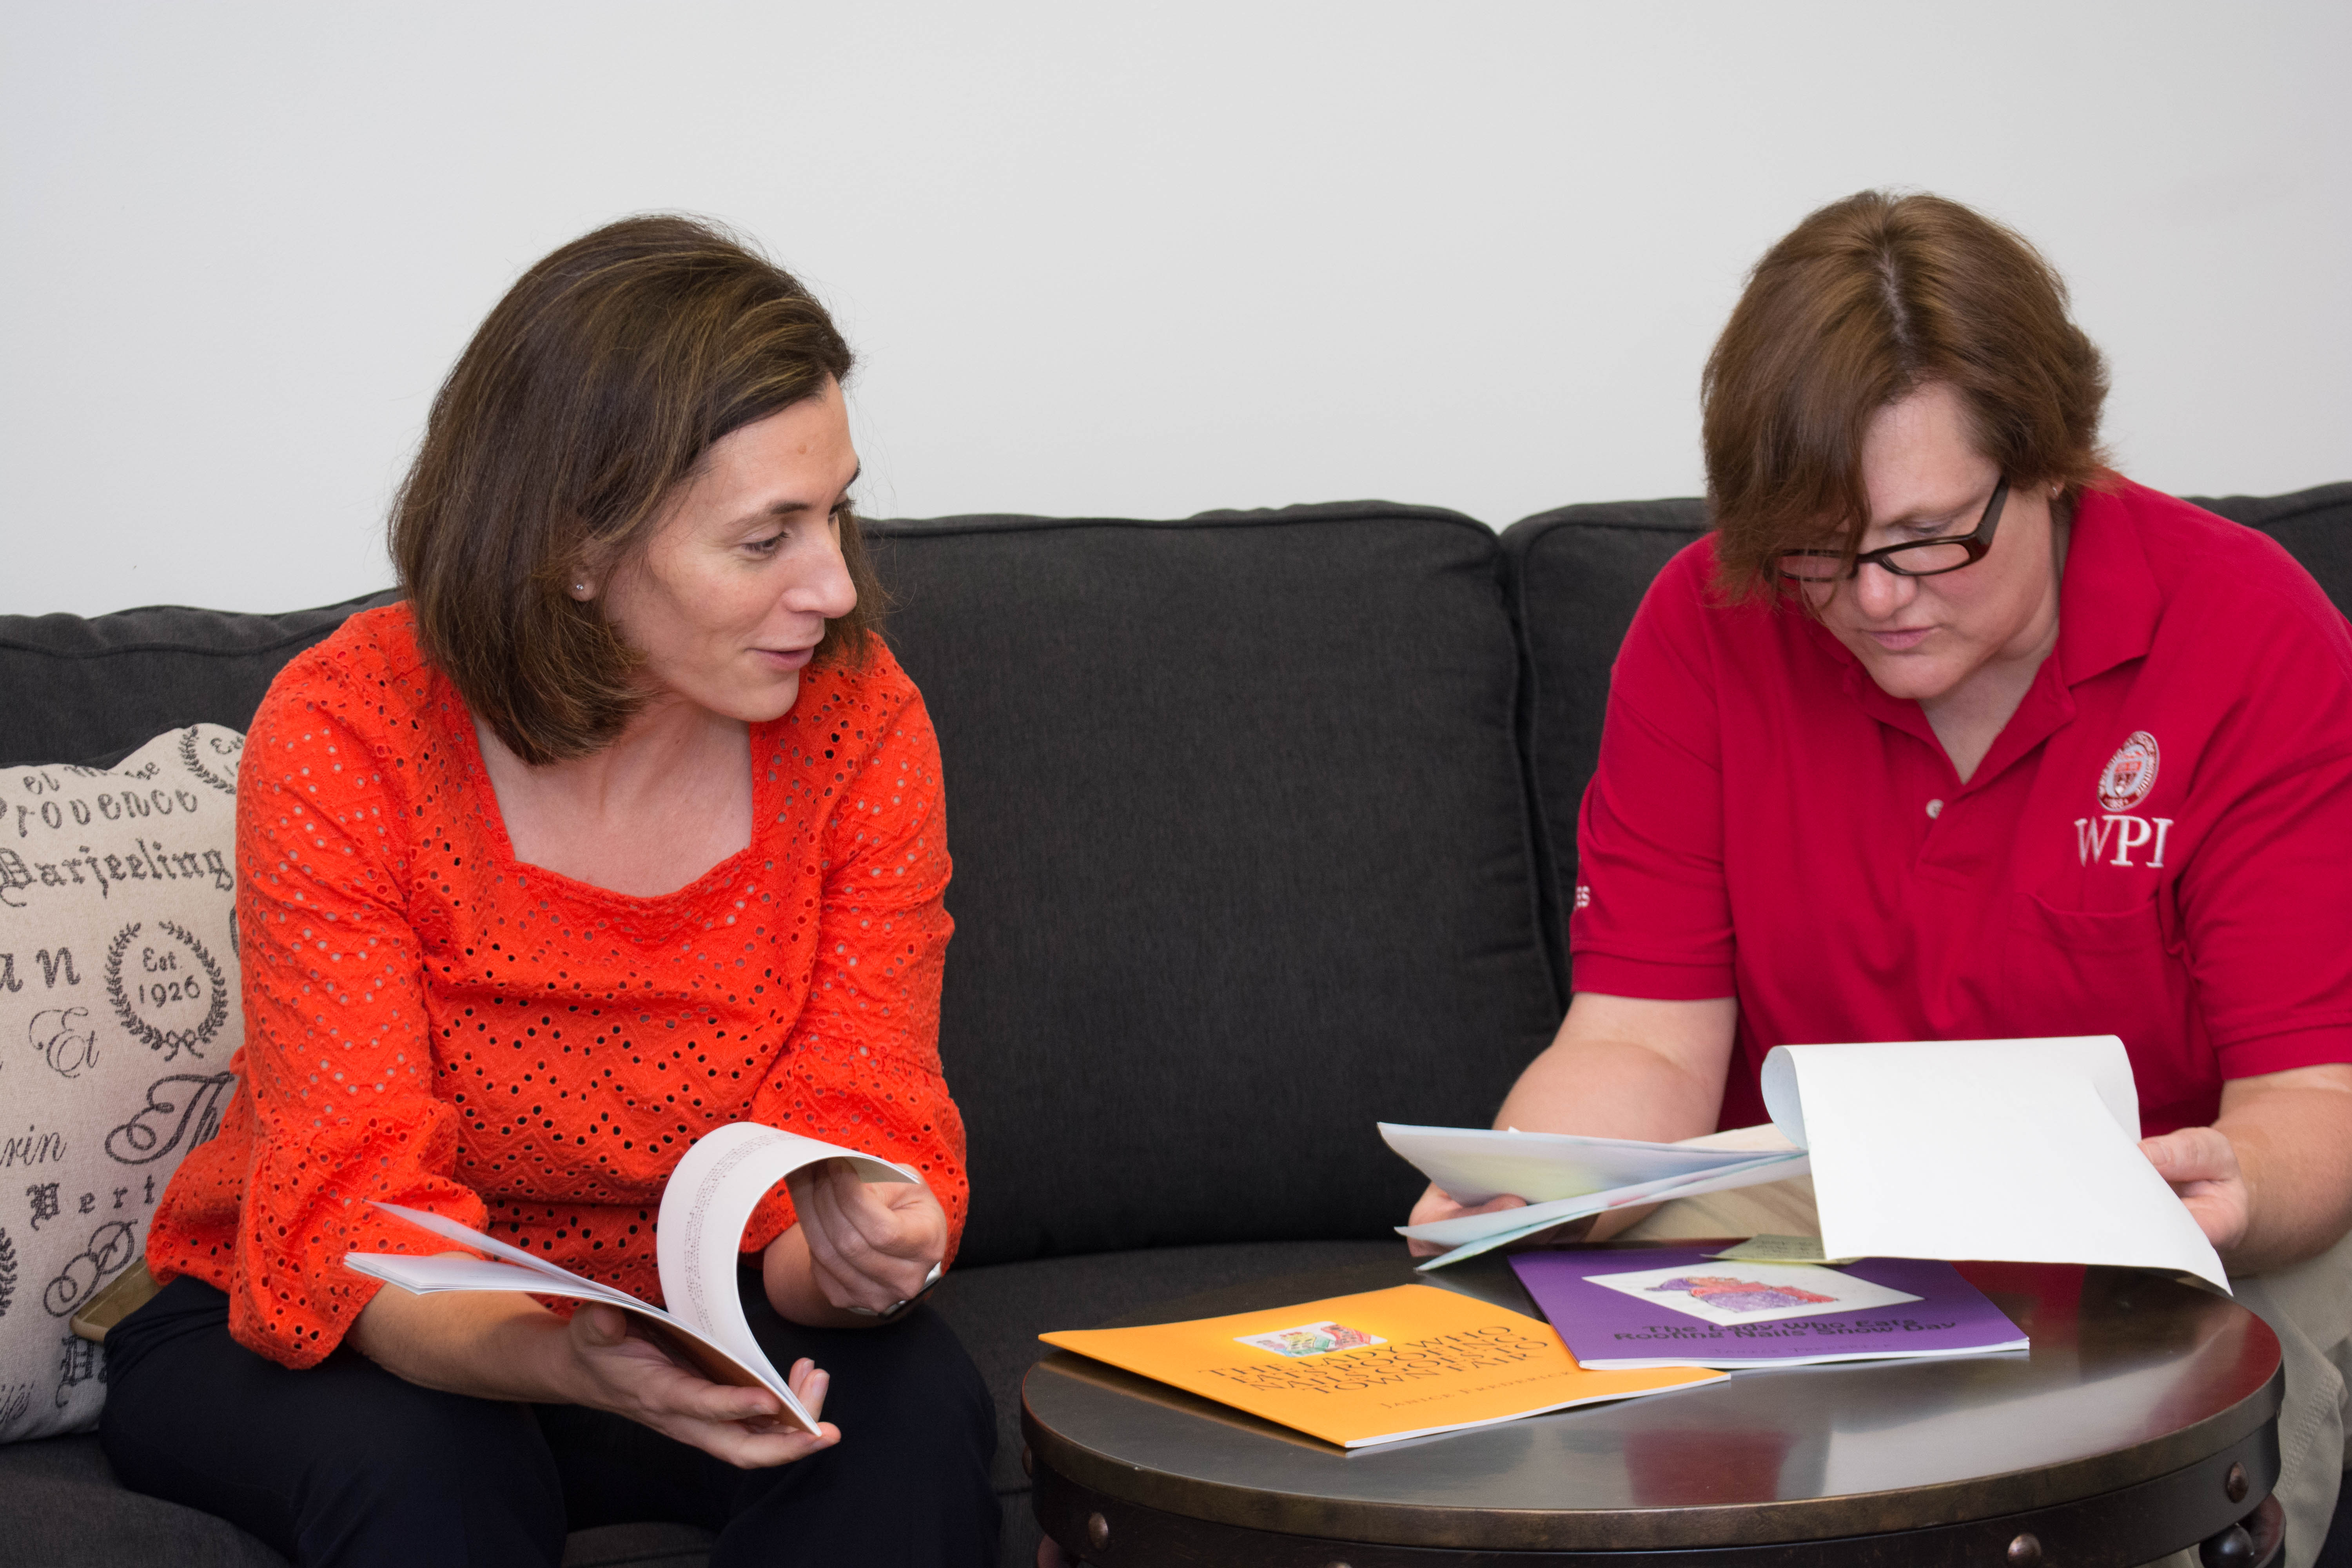 Two women, one in an orange shirt on the left and one in a red shirt on the right, sitting on a couch, smiling, and looking through books.